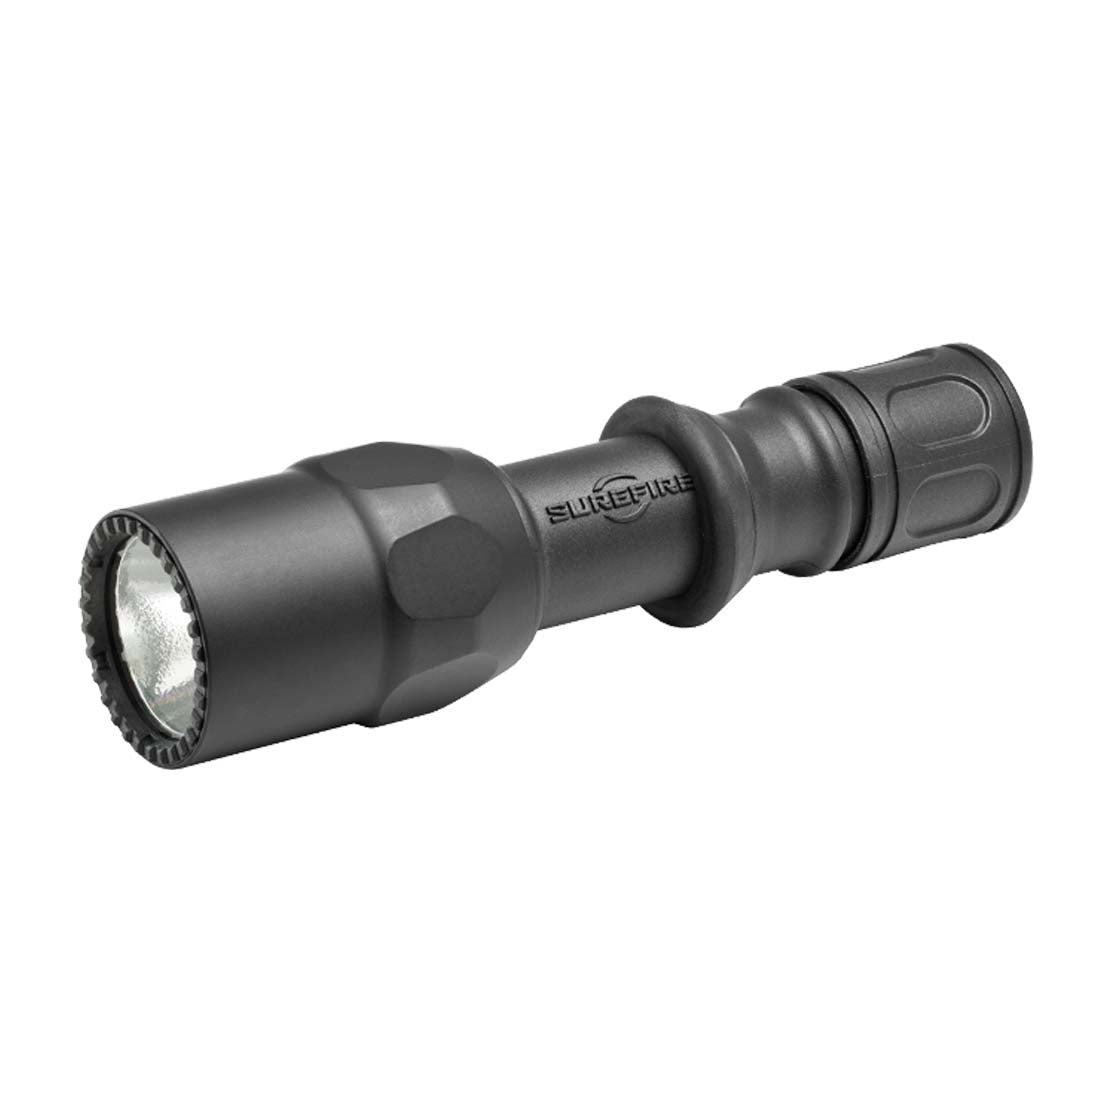 Surefire G2ZX CombatLight Single Output Led Flashlight